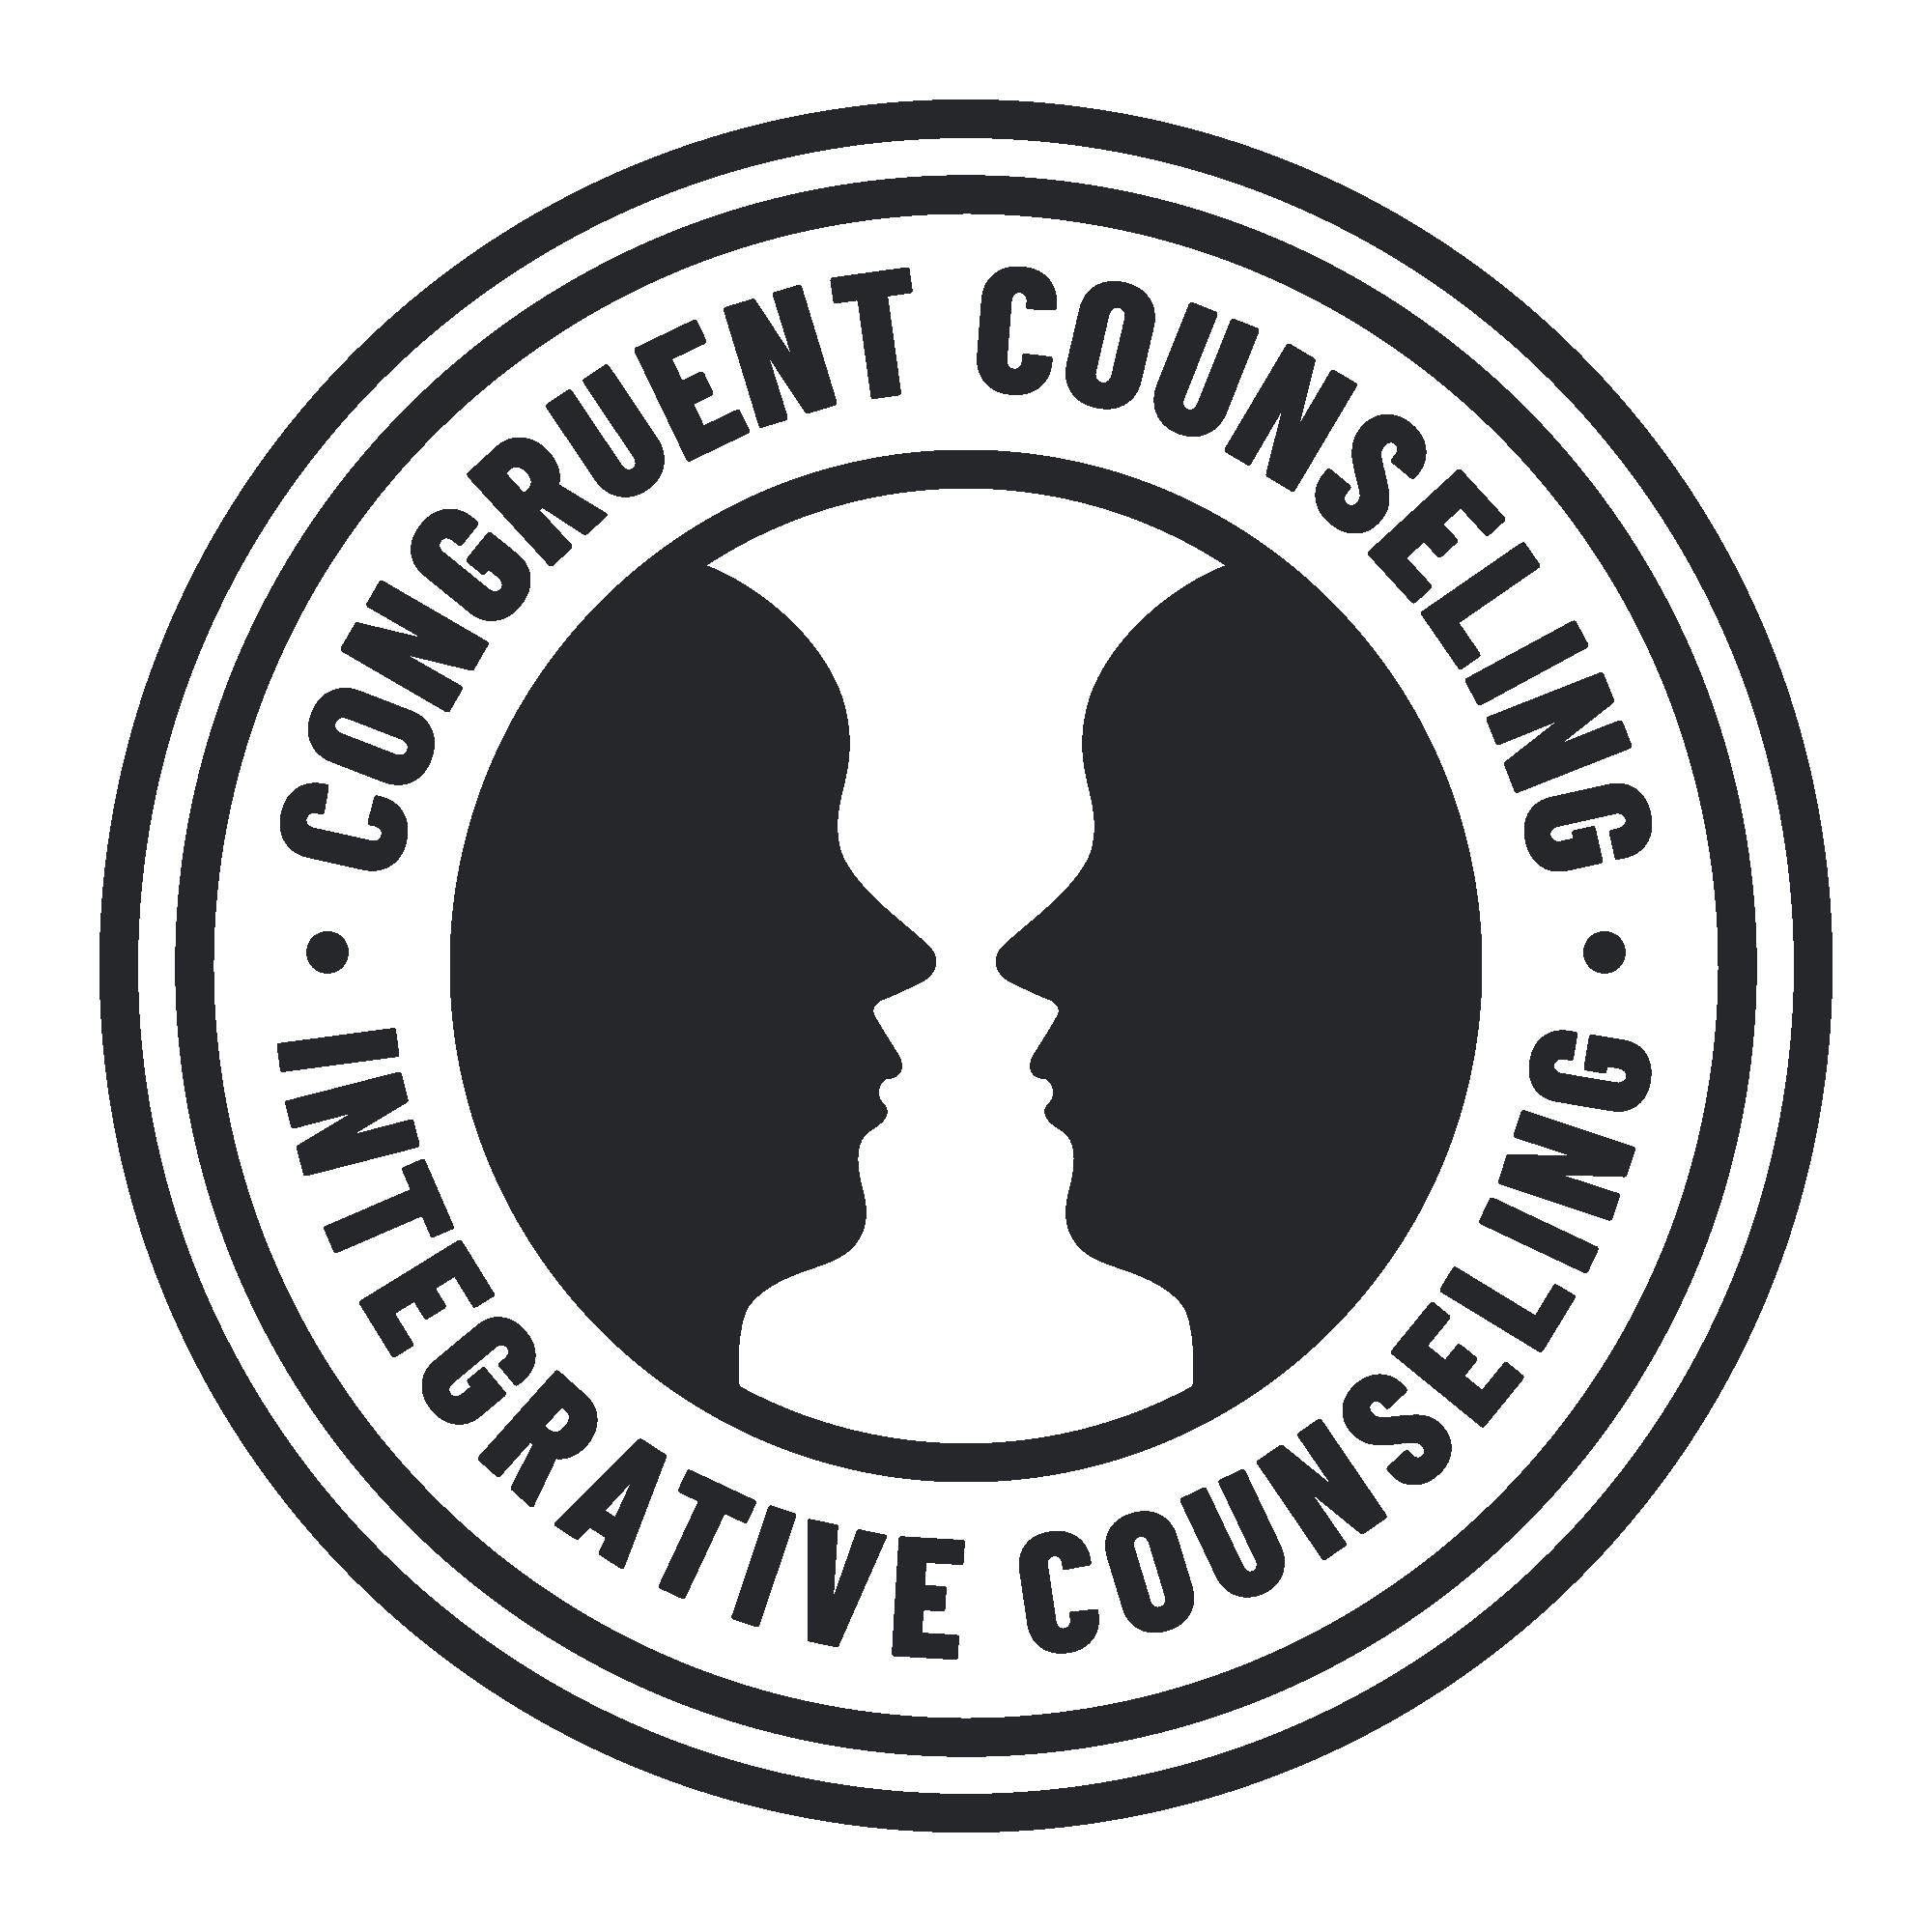 Congruent Counseling Integrative Counseling logo